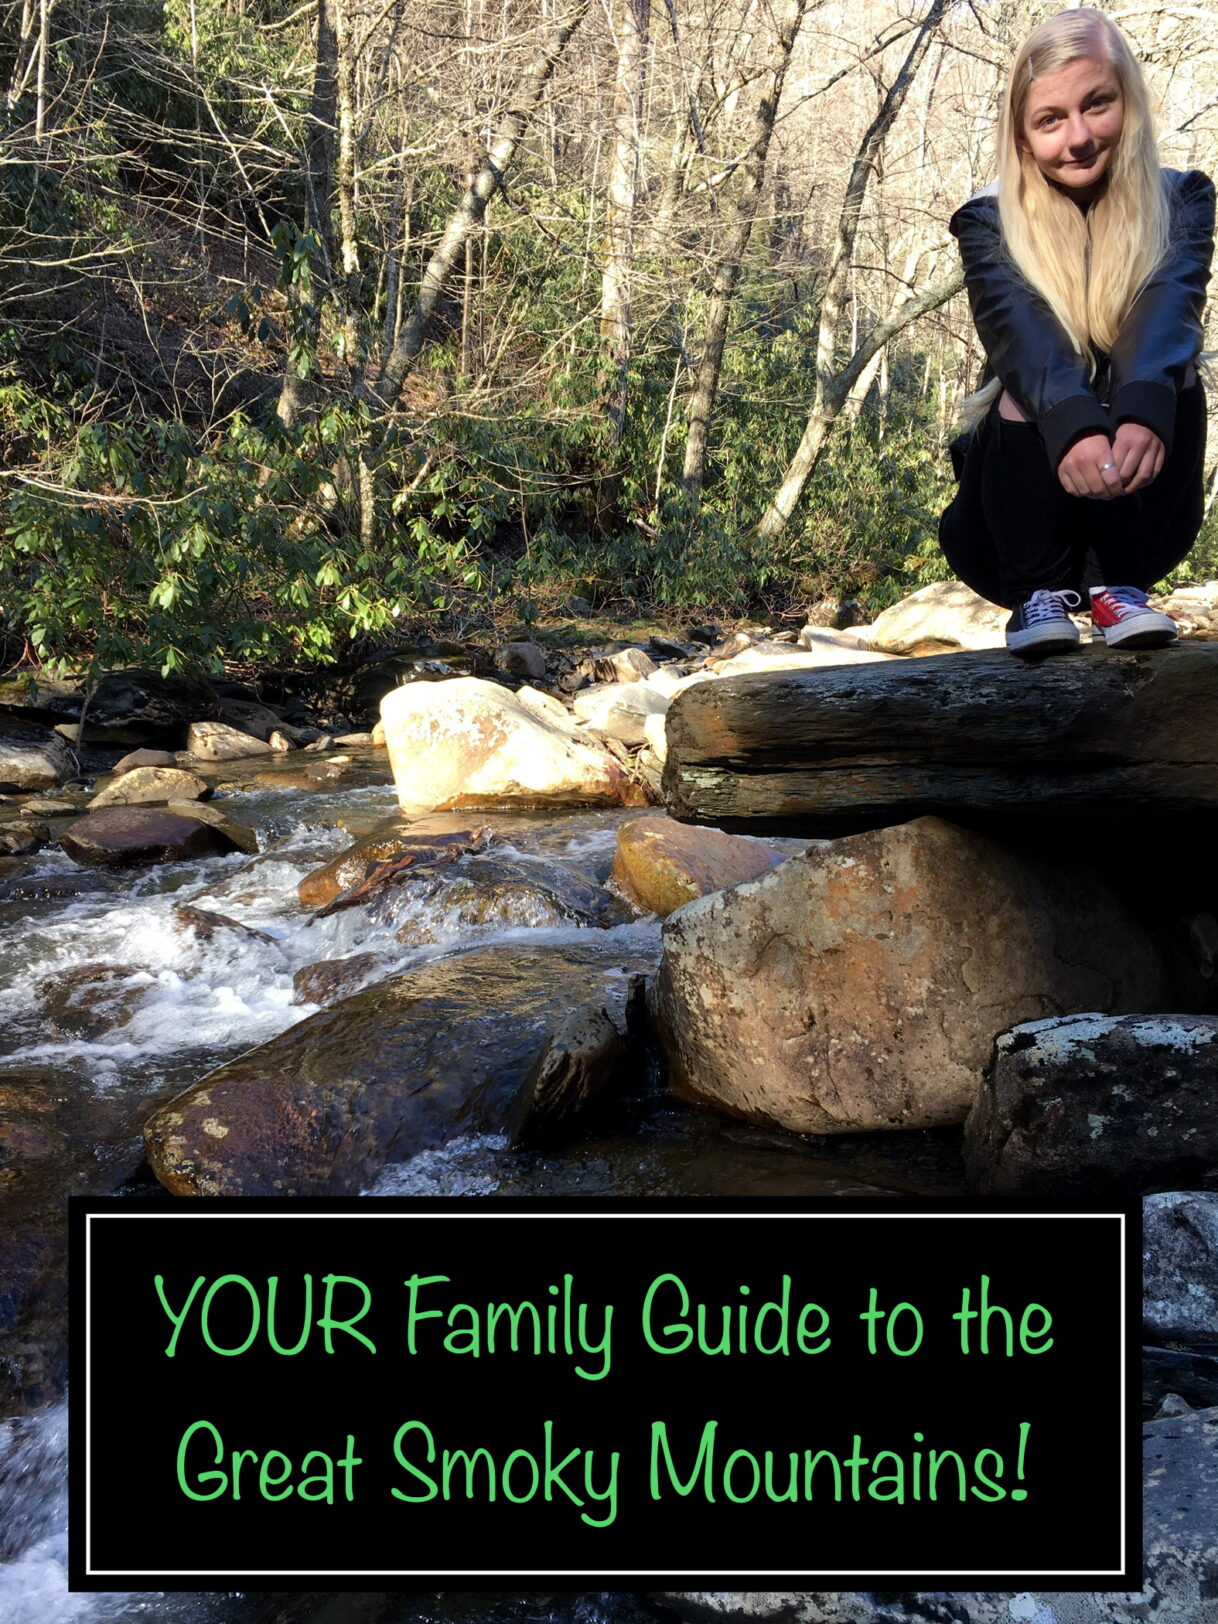 YOUR Family Guide to The Great Smoky Mountains! THOUSANDS of THE Coolest Things to See, Do, Eat, and Drink in Eastern Tennessee and Western North Carolina!